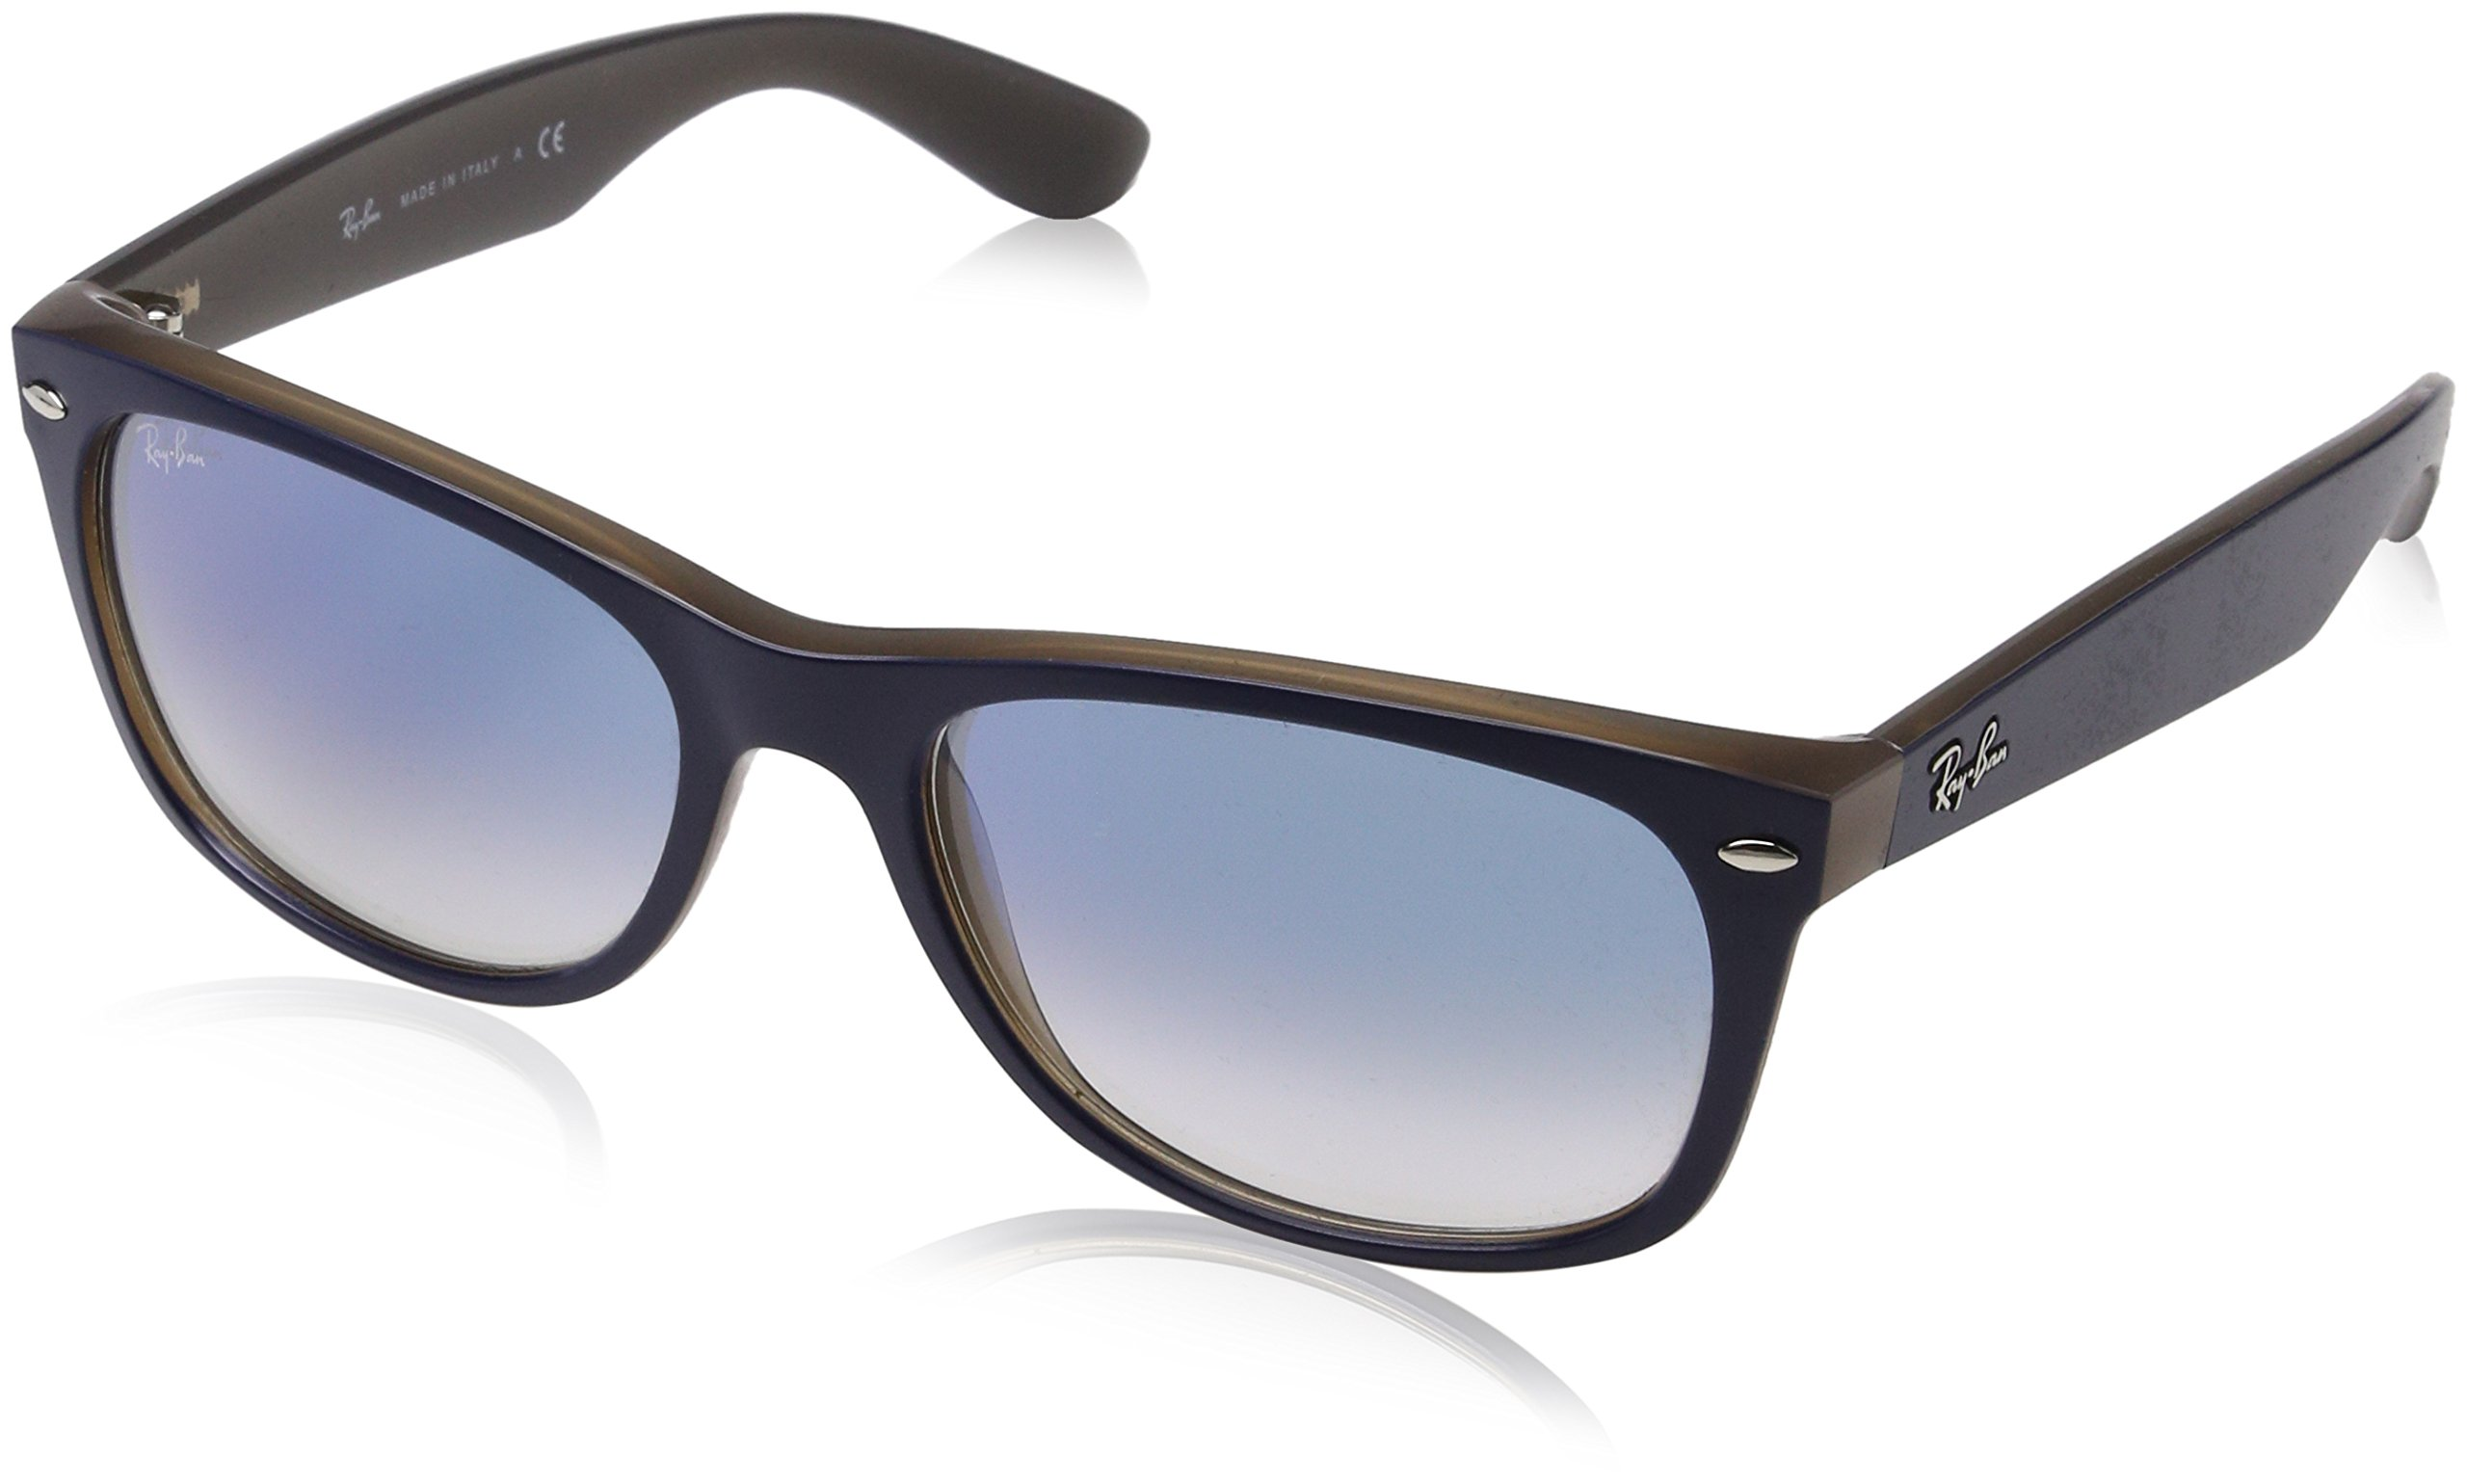 RAY-BAN RB2132 New Wayfarer Sunglasses, Matte Blue On Brown/Blue Gradient, 58 mm by RAY-BAN